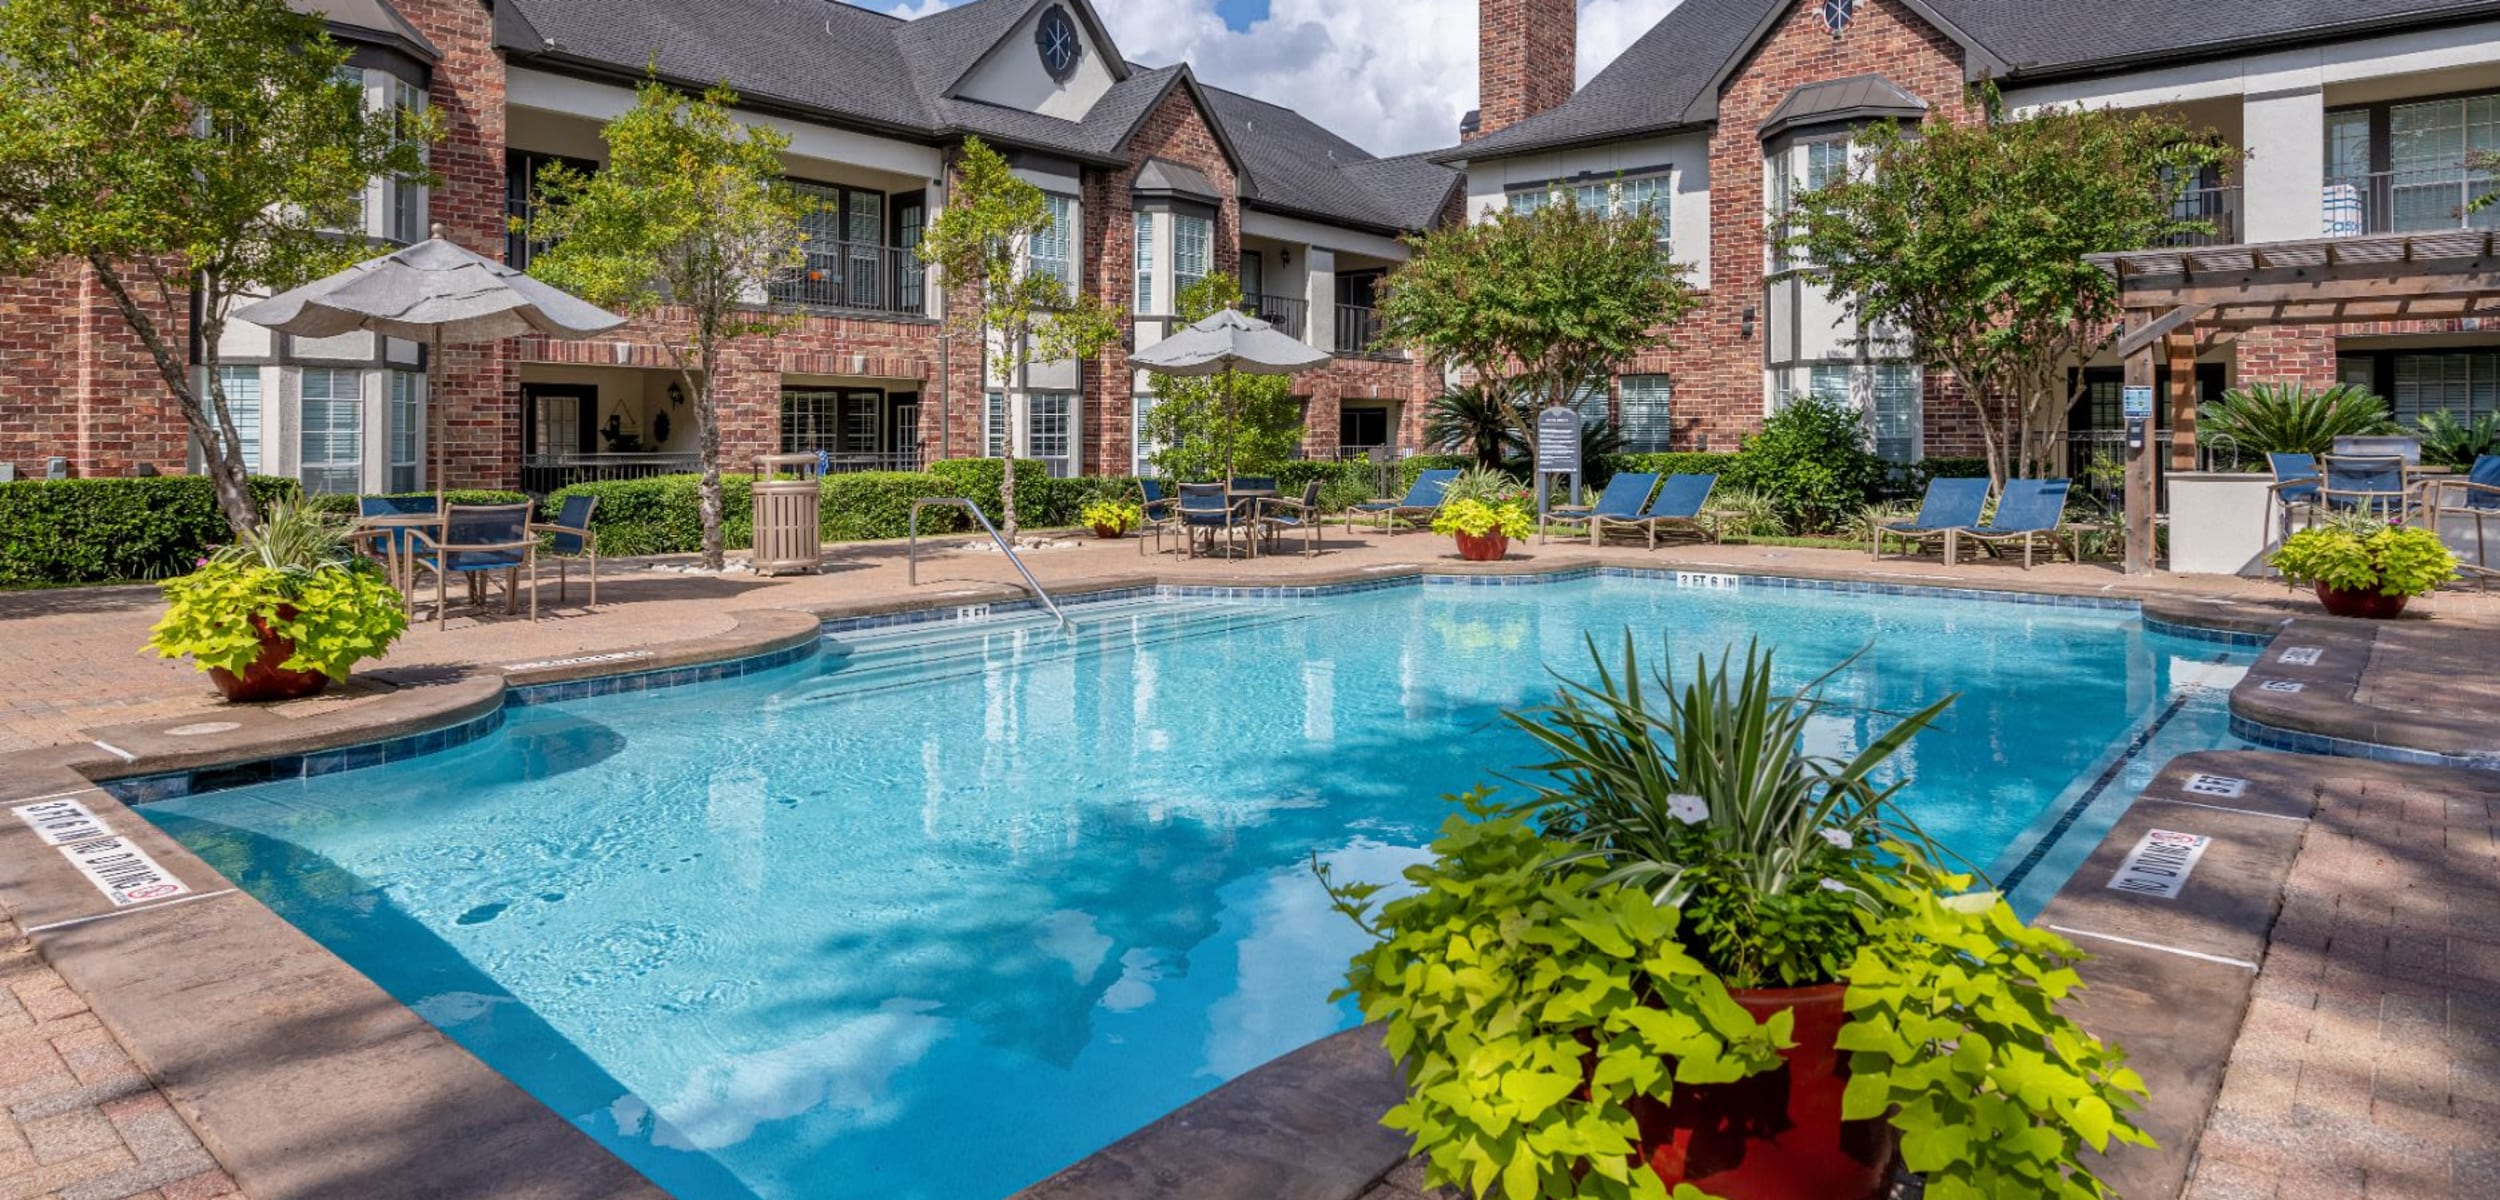 Outdoor pool surrounded by apartments at Marquis on Memorial in Houston Texas,